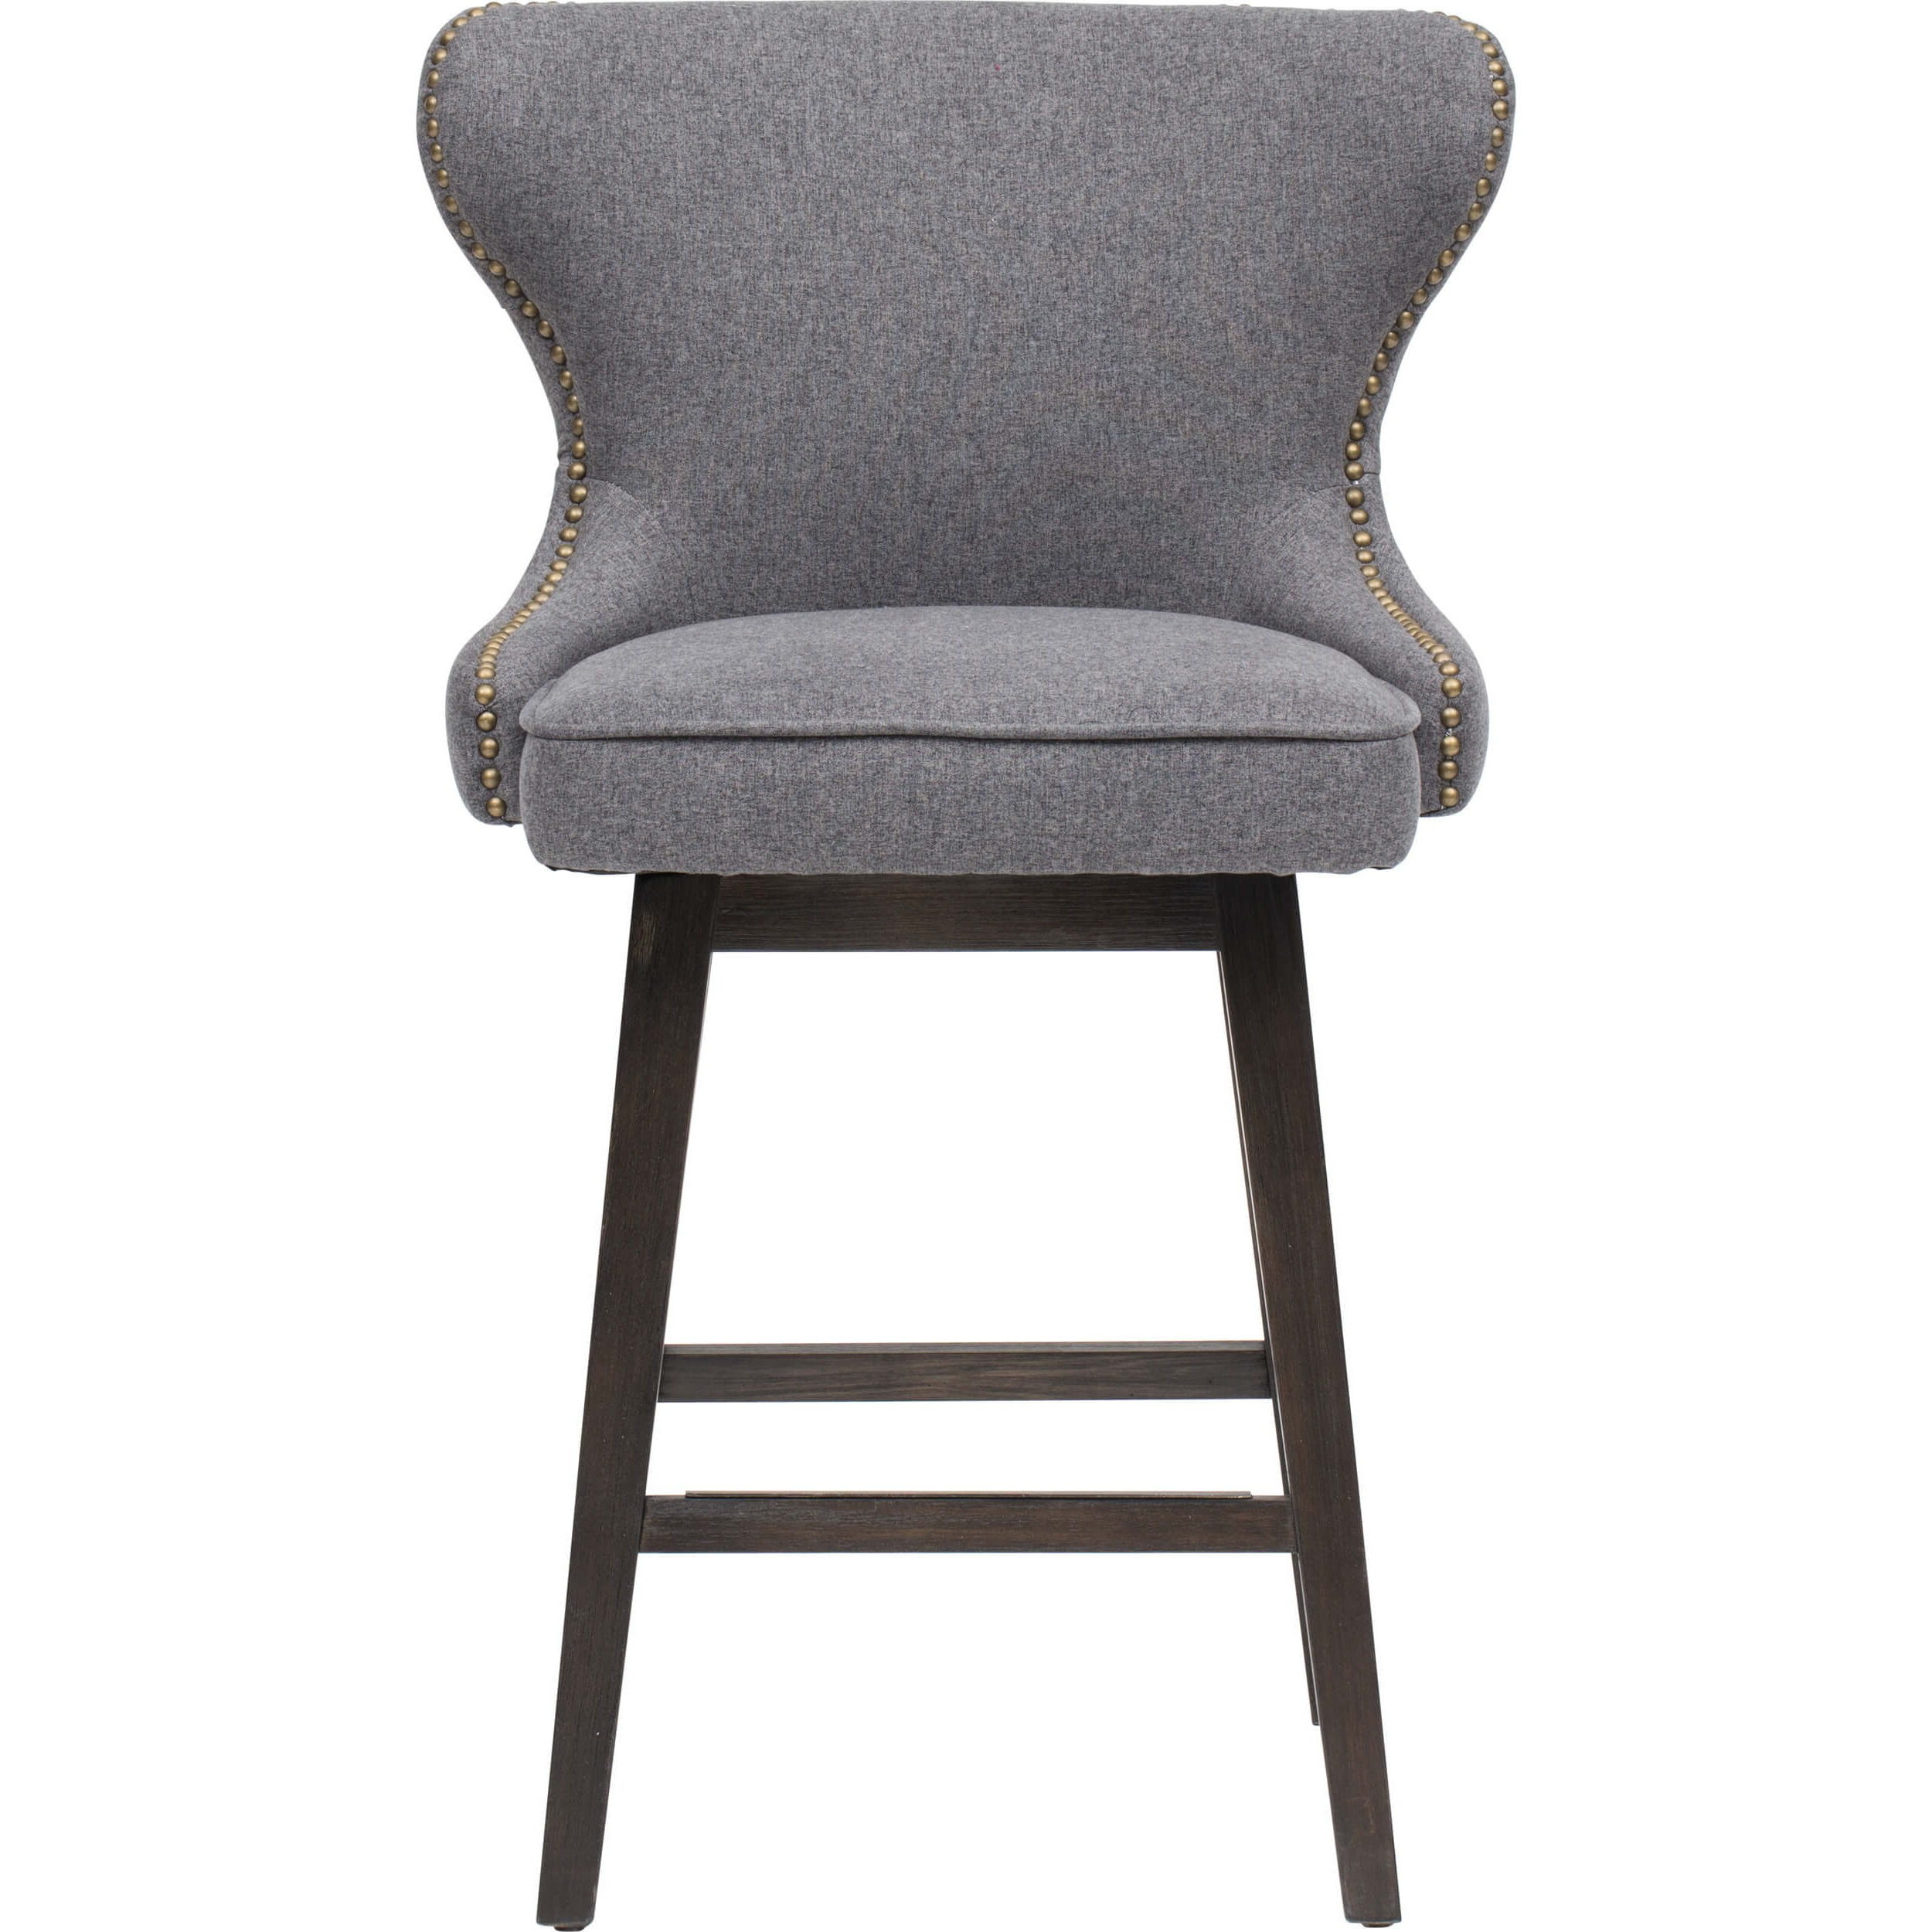 Dark Grey Swivel Chairs Intended For Most Recent Ariana Swivel Counter Stool, Dark Grey – Dining Stools – Dining (View 6 of 20)